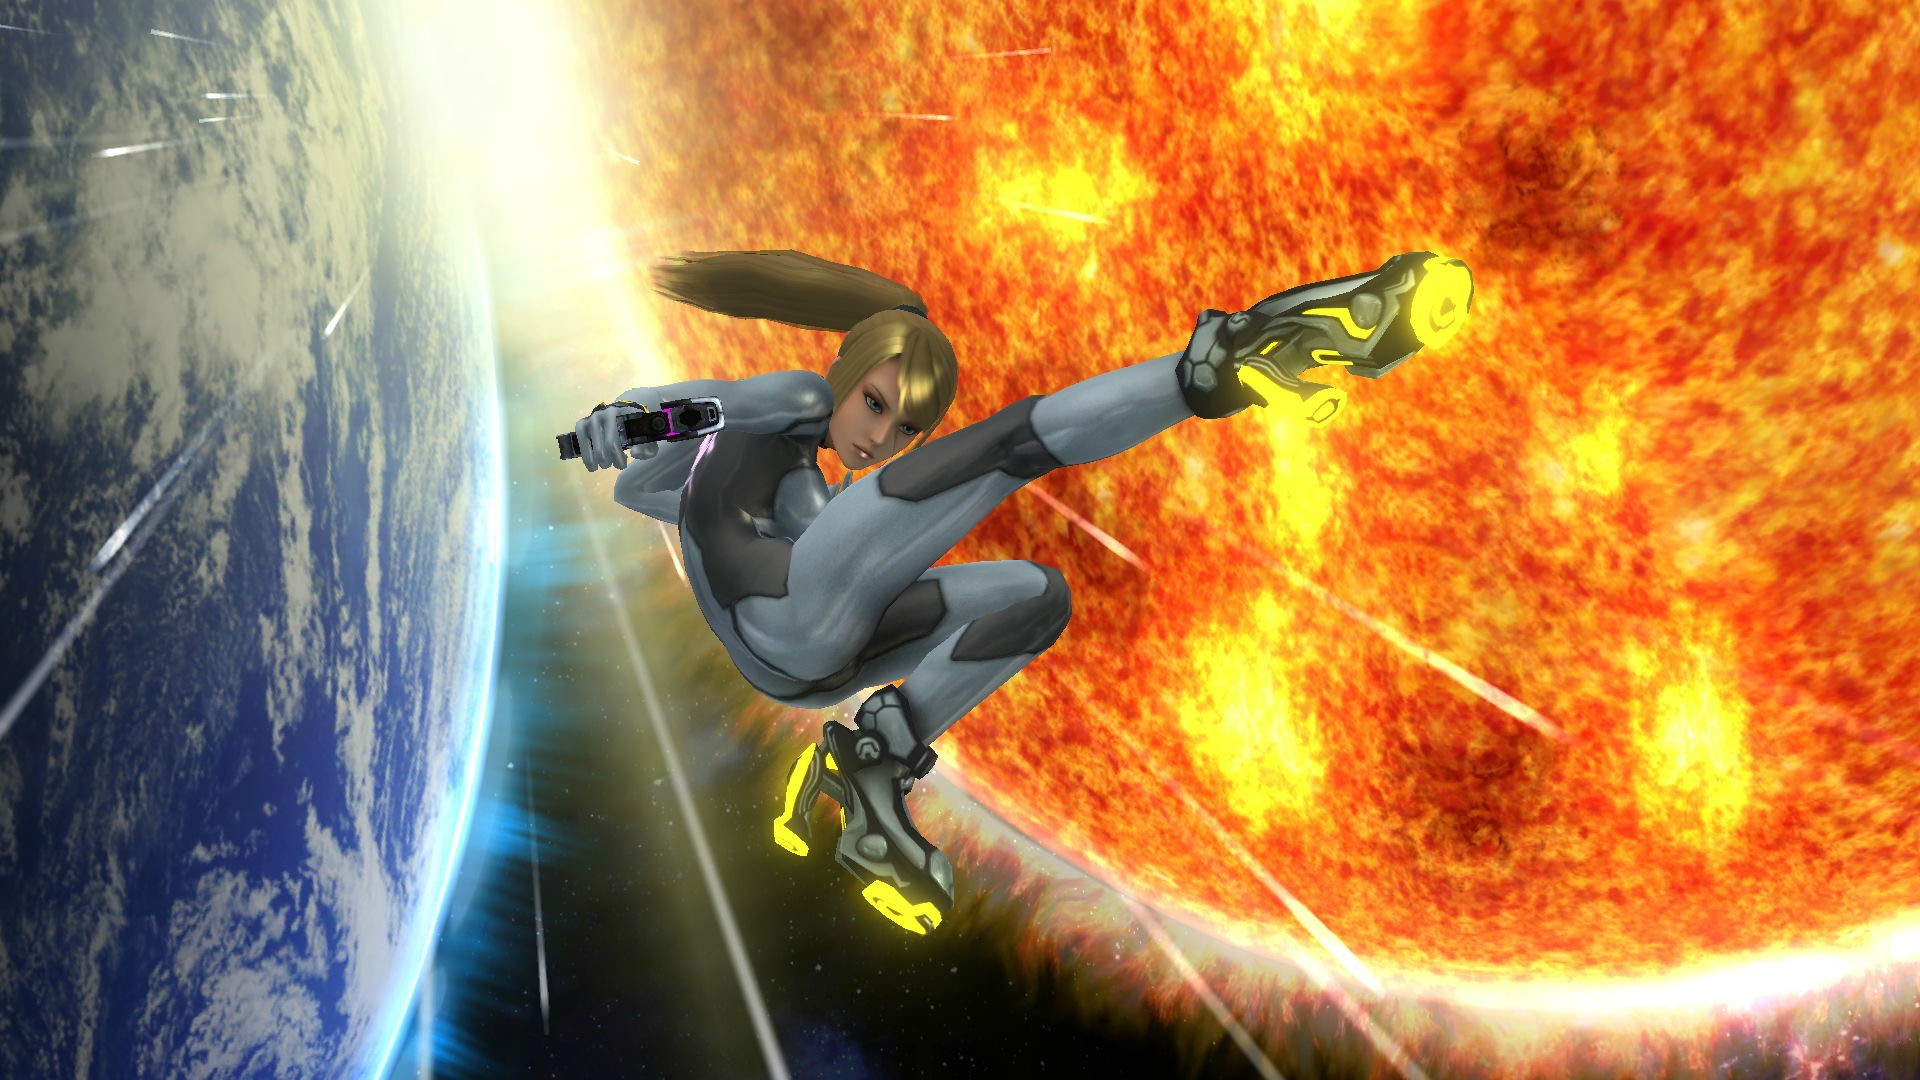 Zero Suit Samus Wallpaper   1920x1080